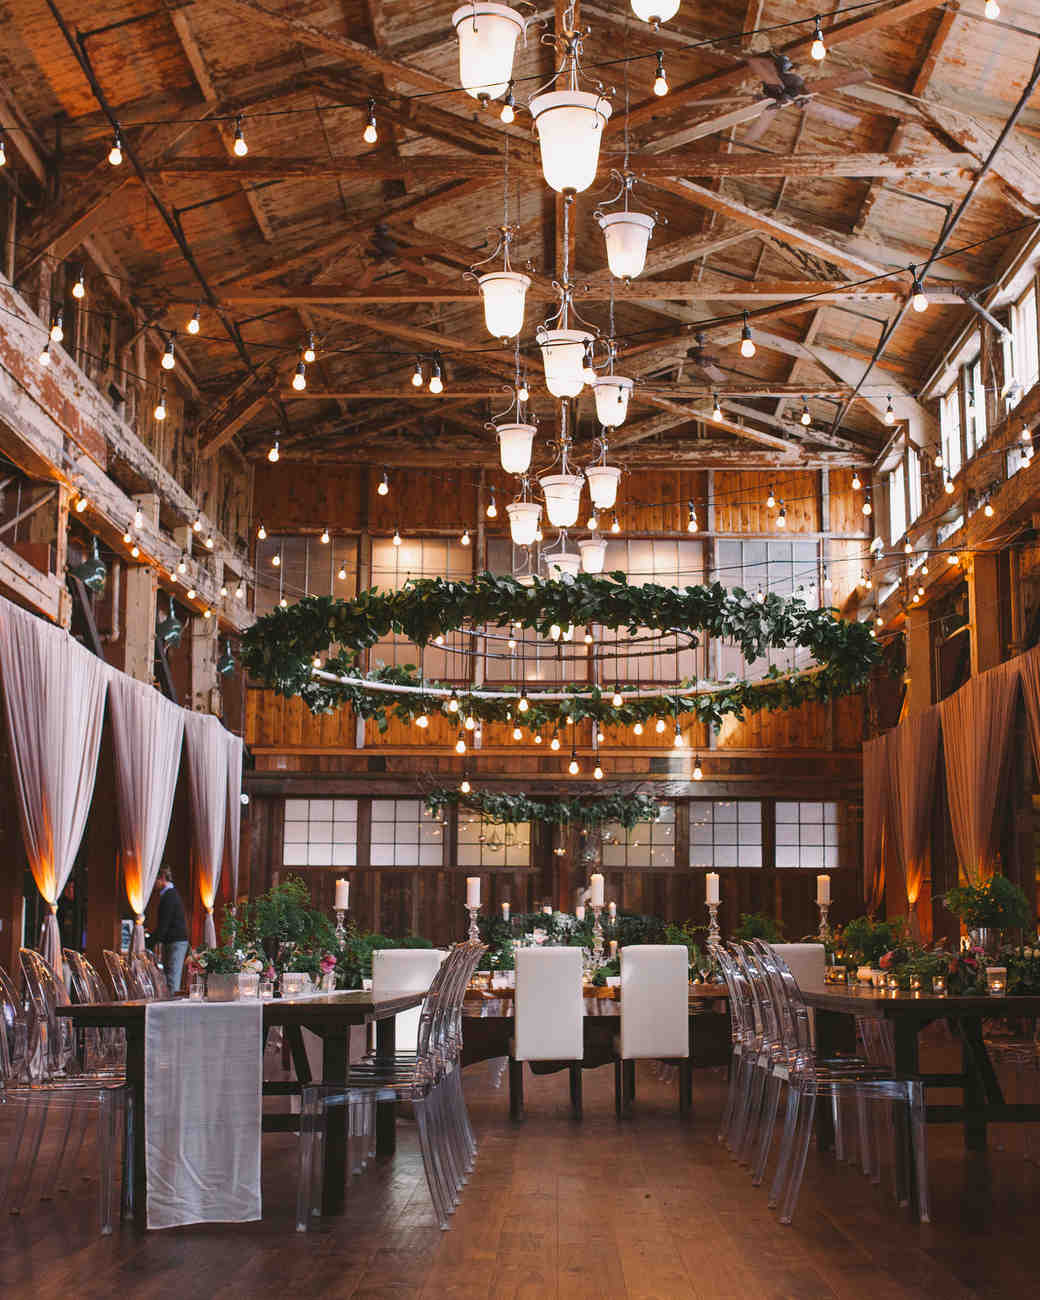 Restored Warehouses Where You Can Tie the Knot | Martha Stewart Weddings